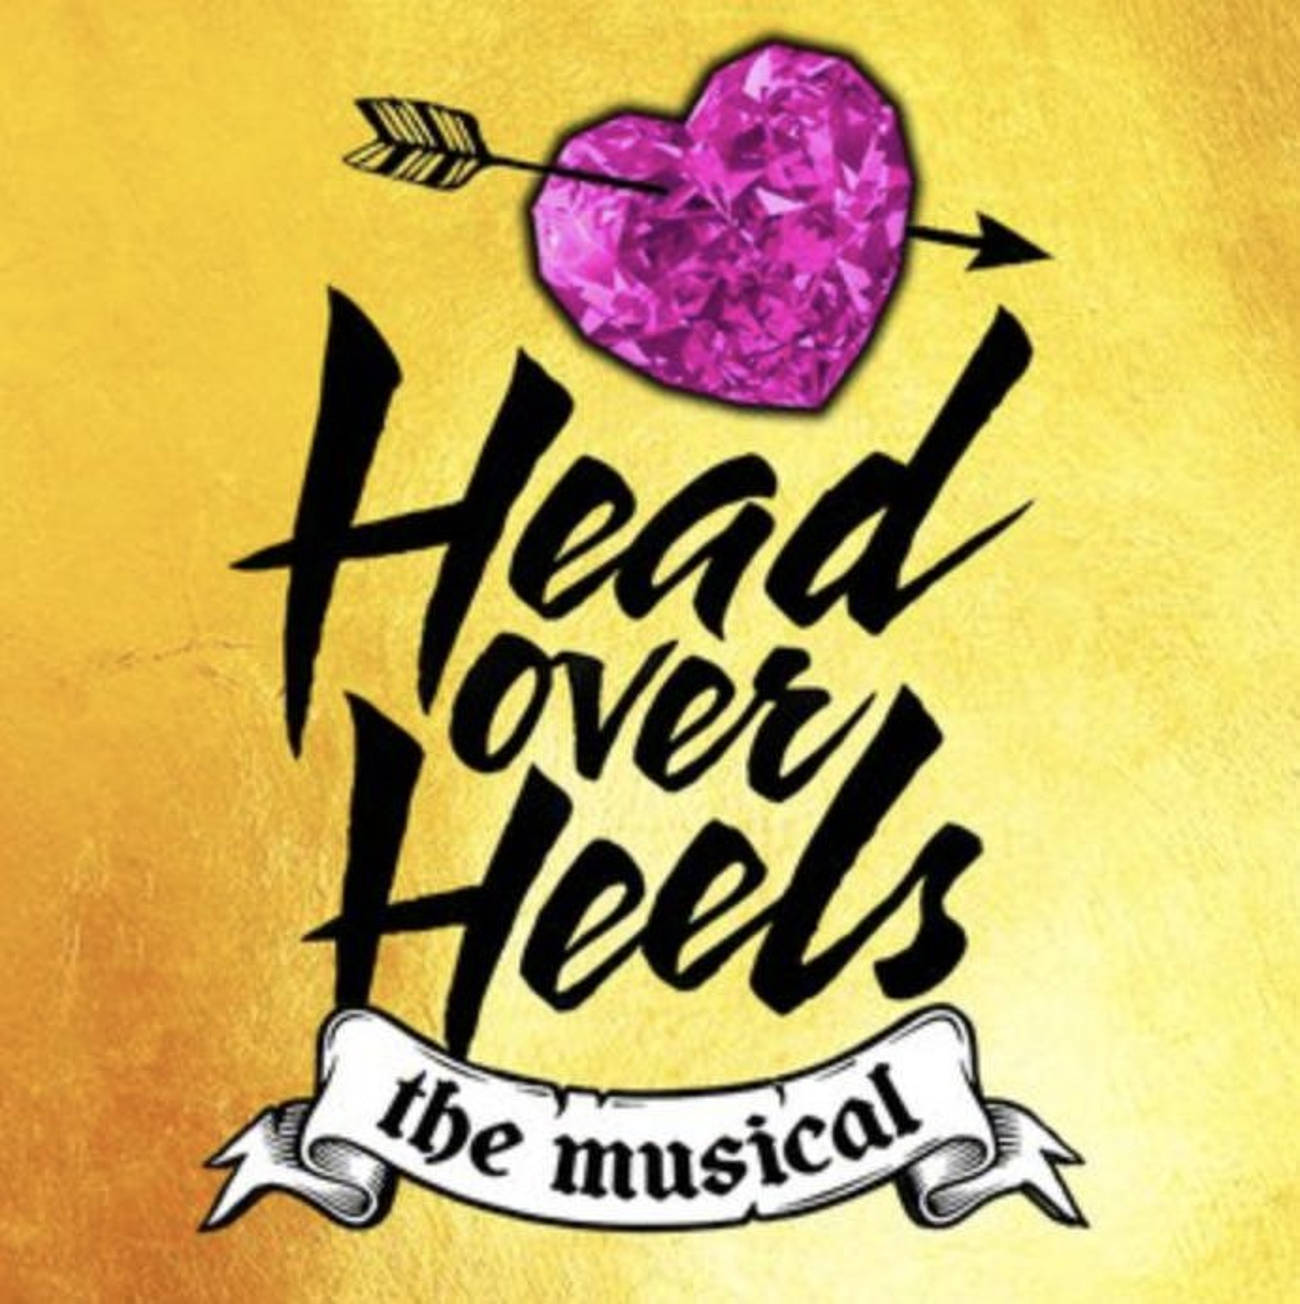 Review Roundup: What Did Critics Think of HEAD OVER HEELS at The Ringwald?